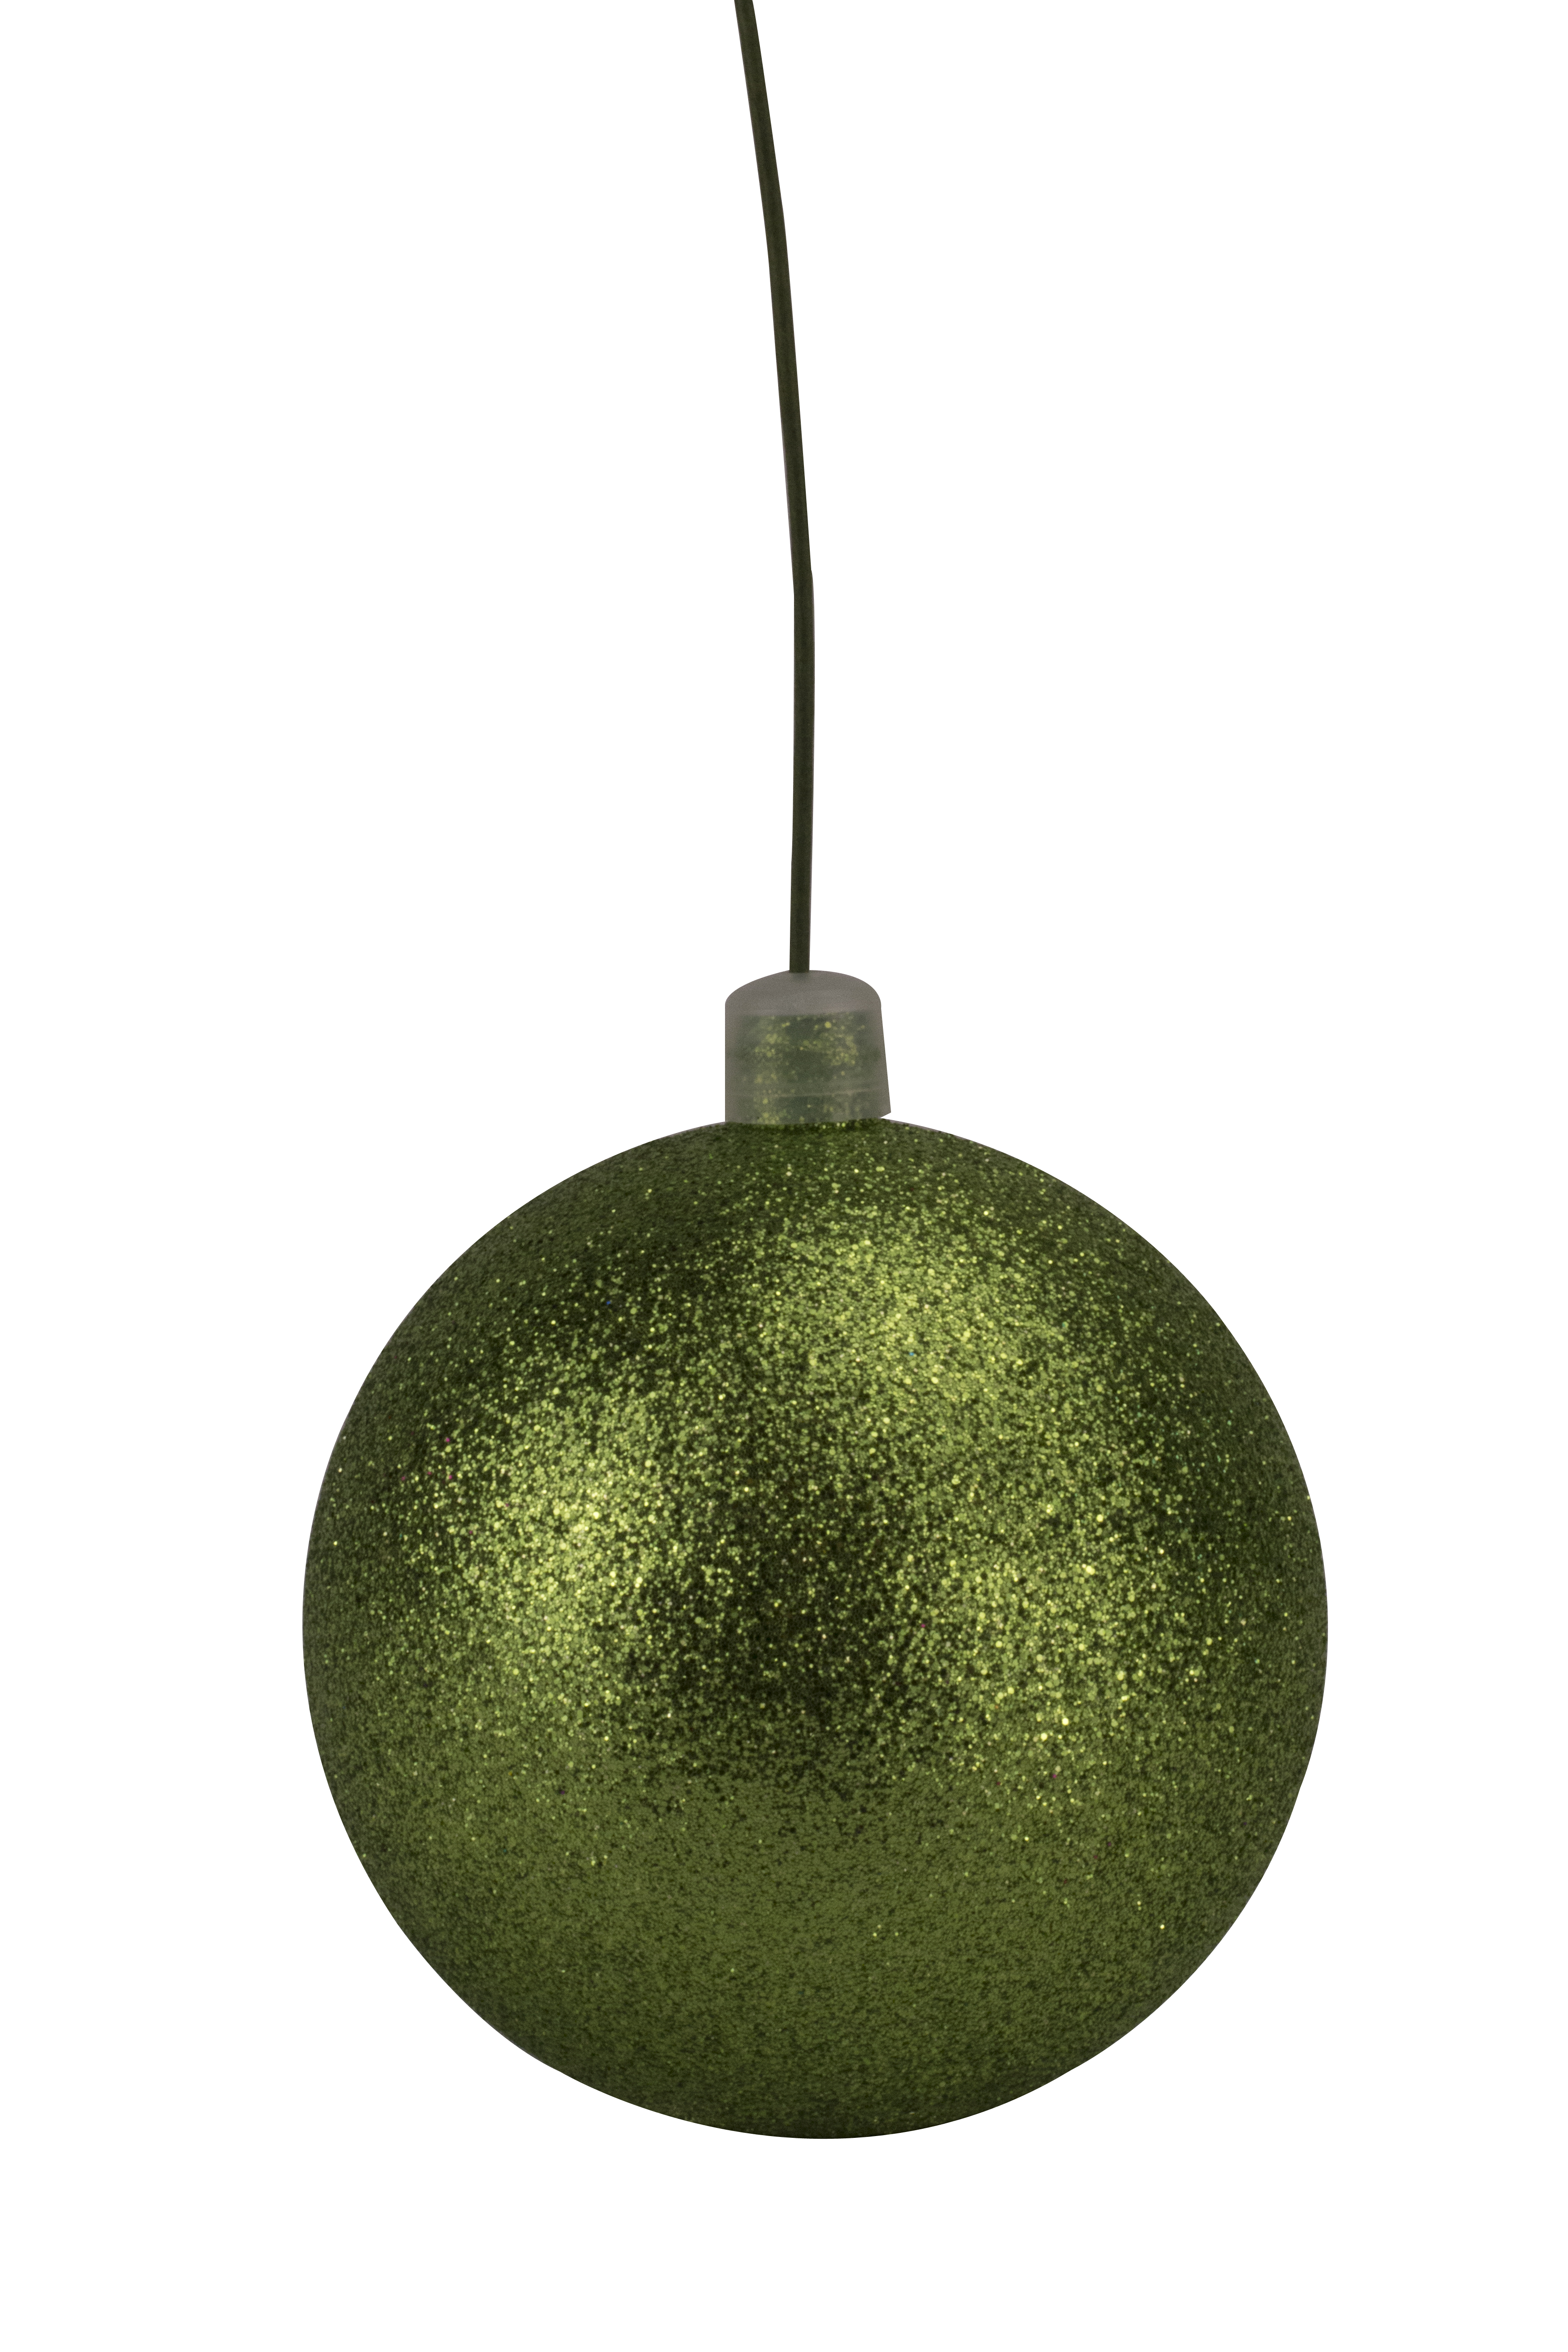 200mm Lime Green Glitter Ball Ornament with Wire